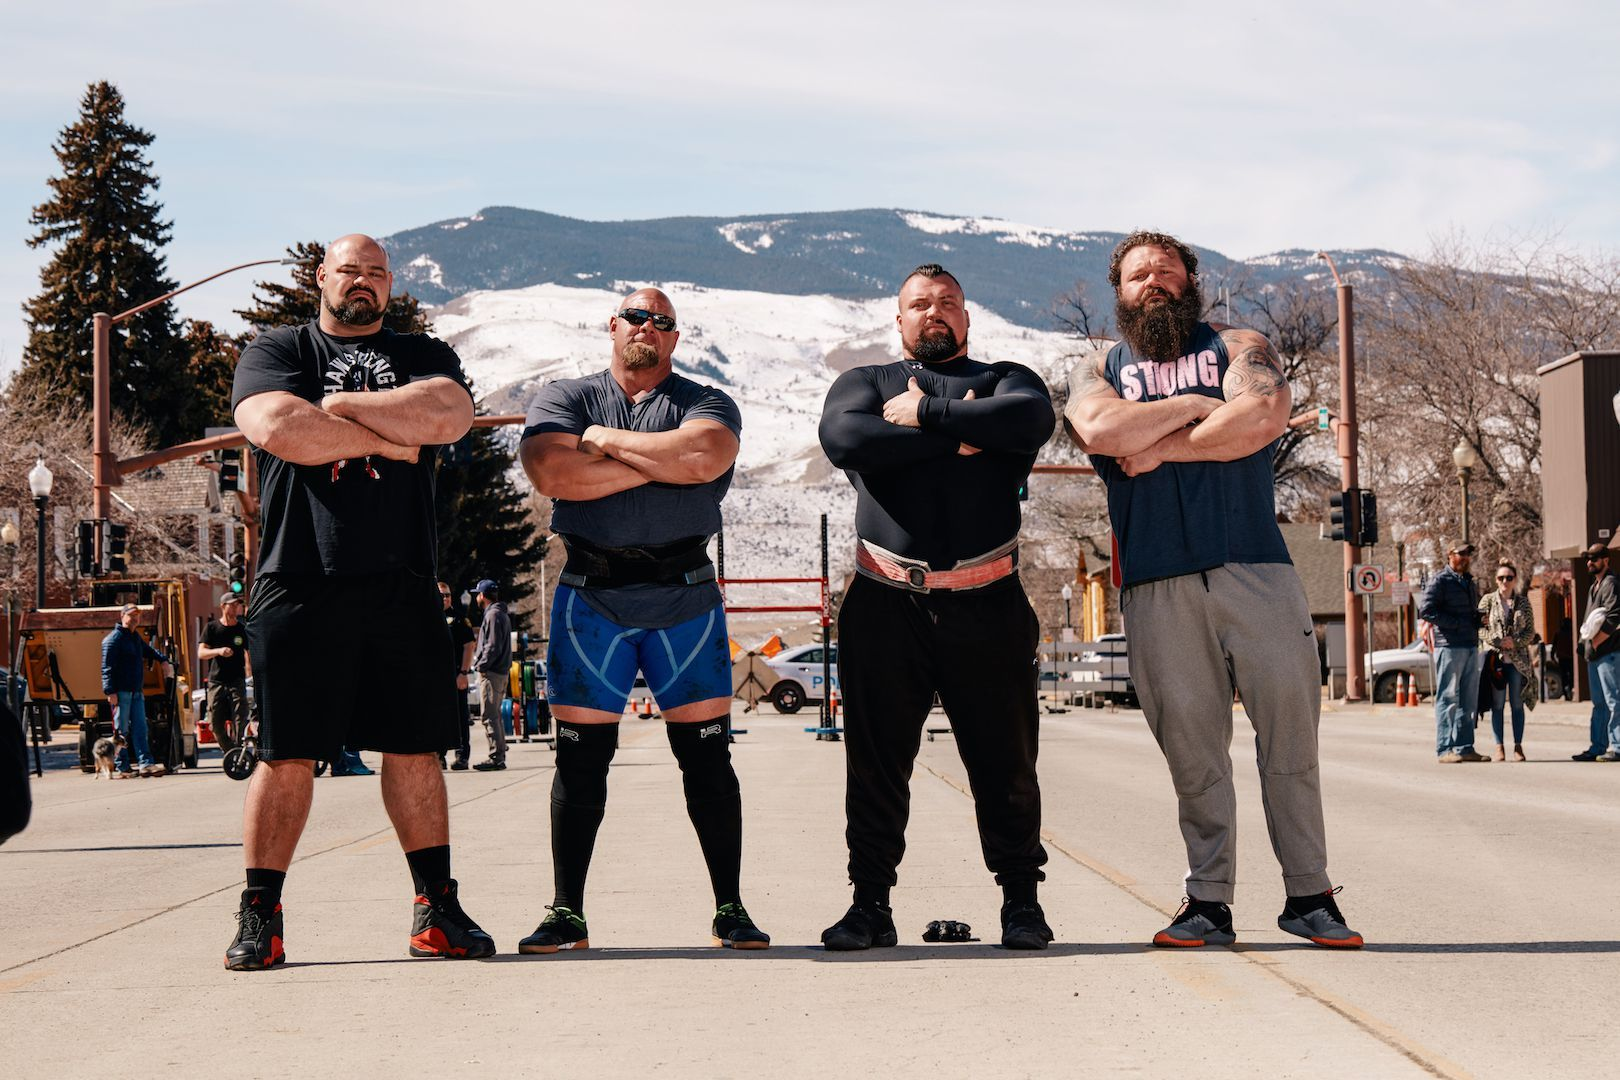 Brian Shaw and Eddie Hall Are Trying to Break the World's Most Legendary Strength Feats